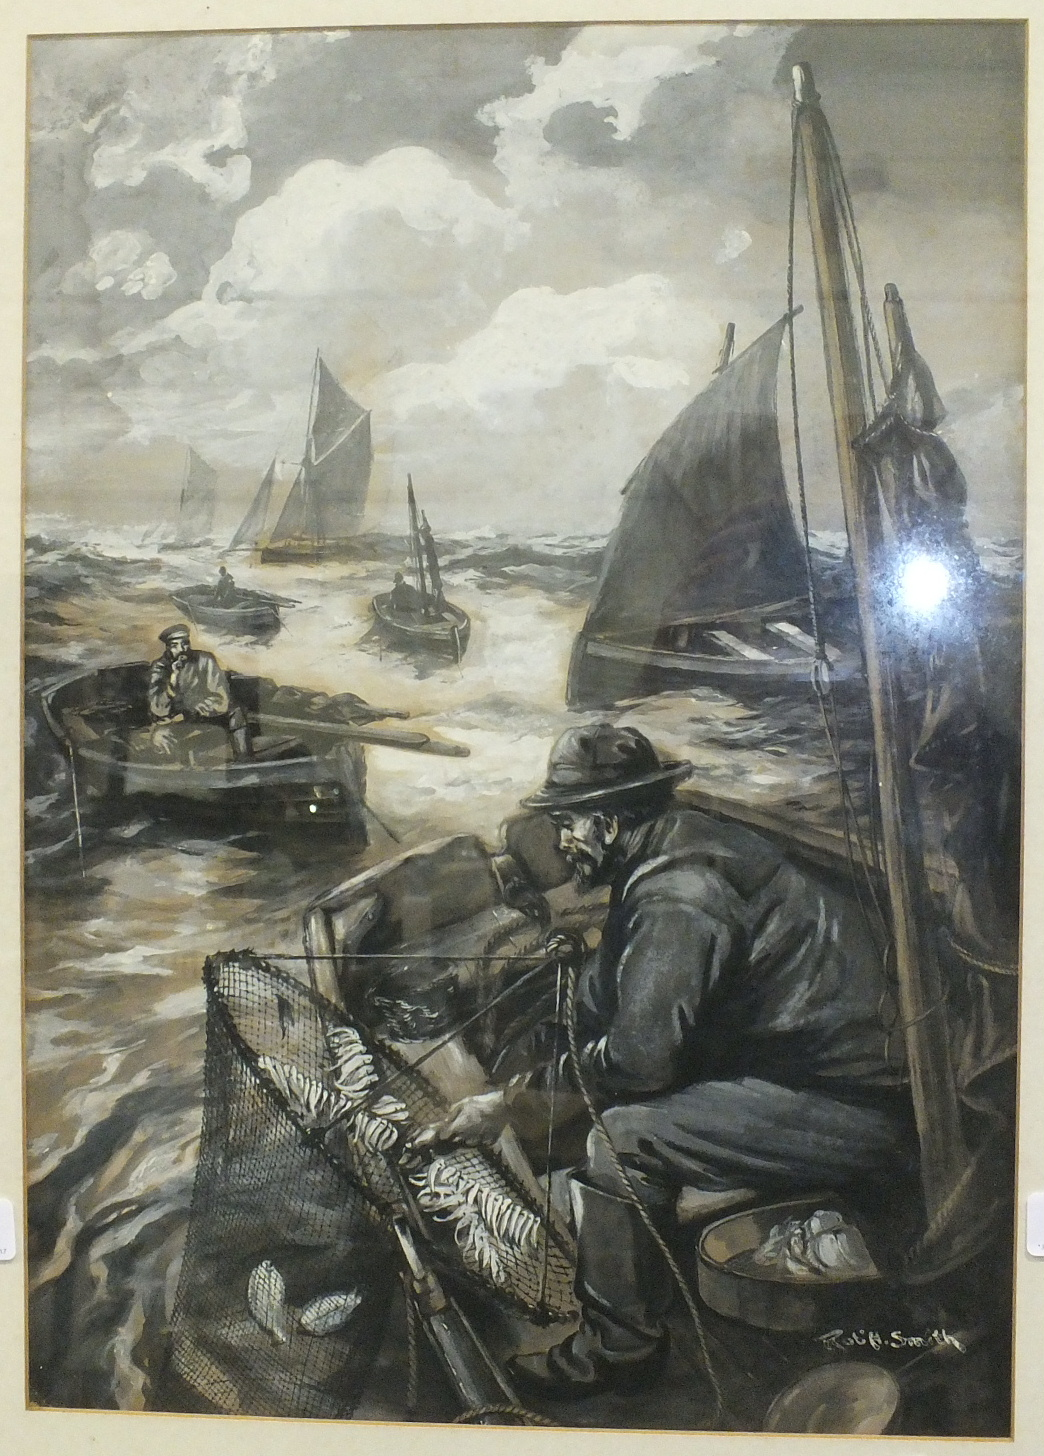 Lot 46 - Rob. H Smith, 'Fishing for Dabs', a signed watercolour heightened with white, 47 x 33cm.